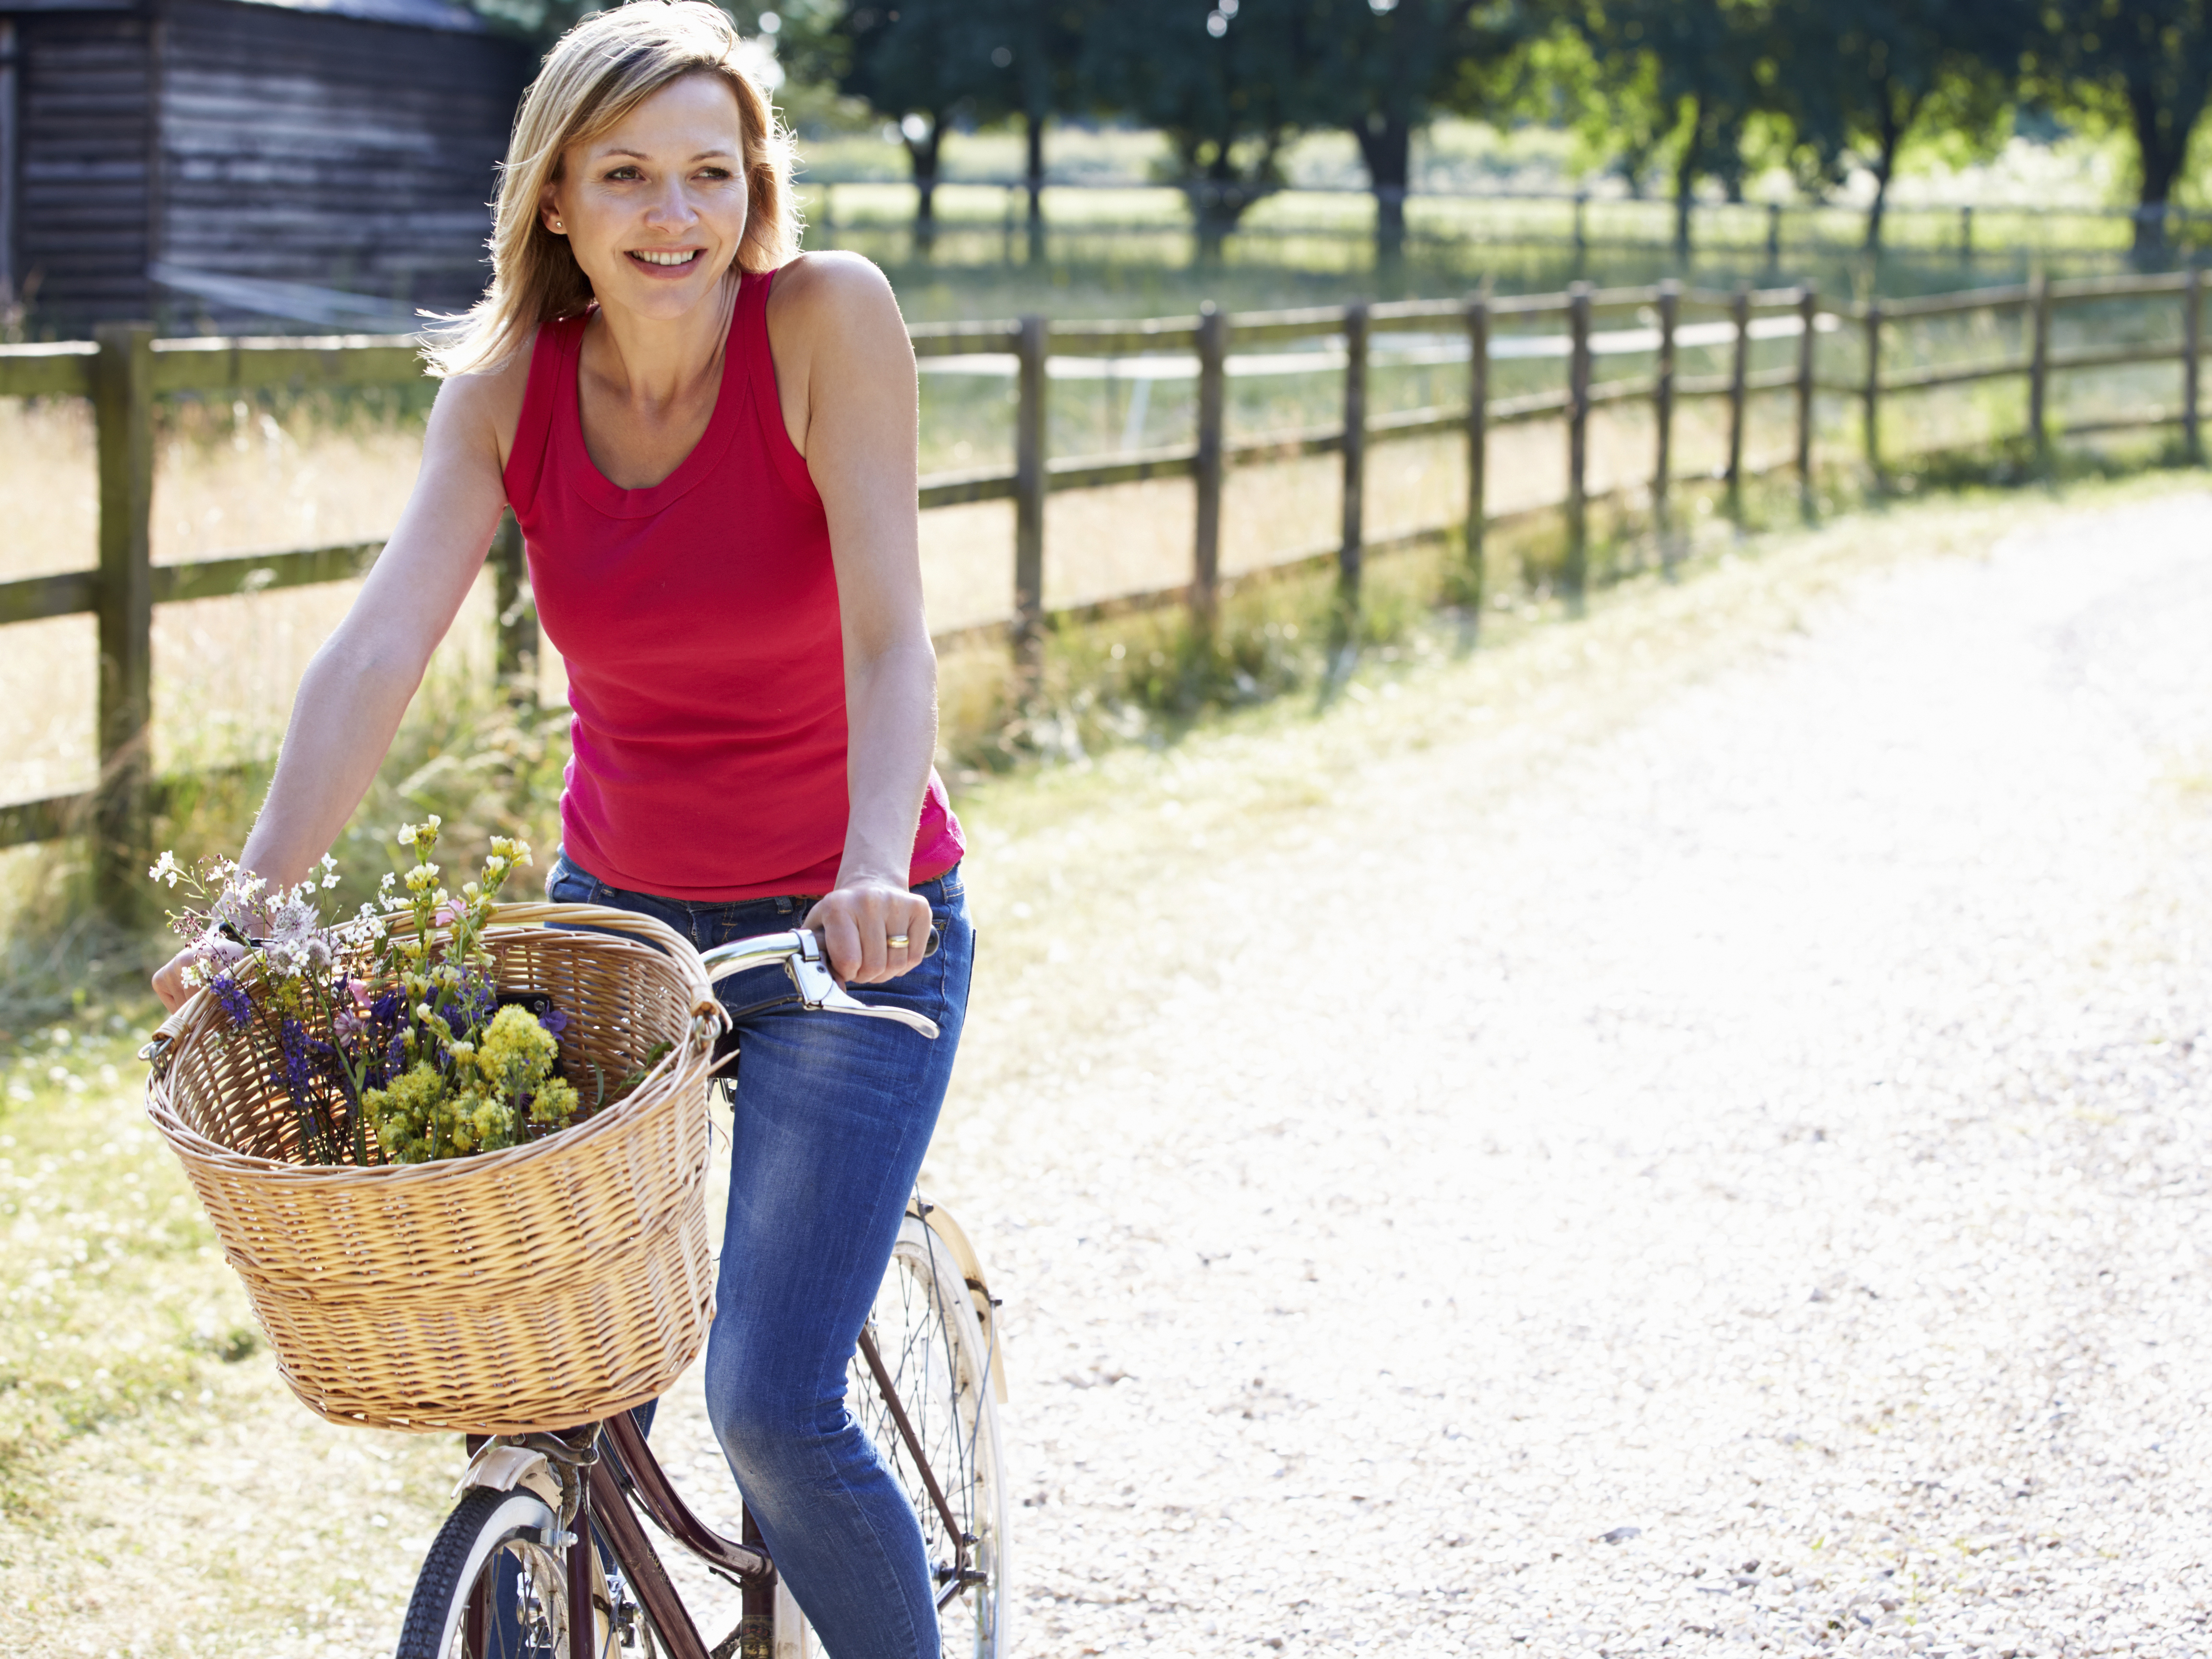 The best time to get the most from antioxidants